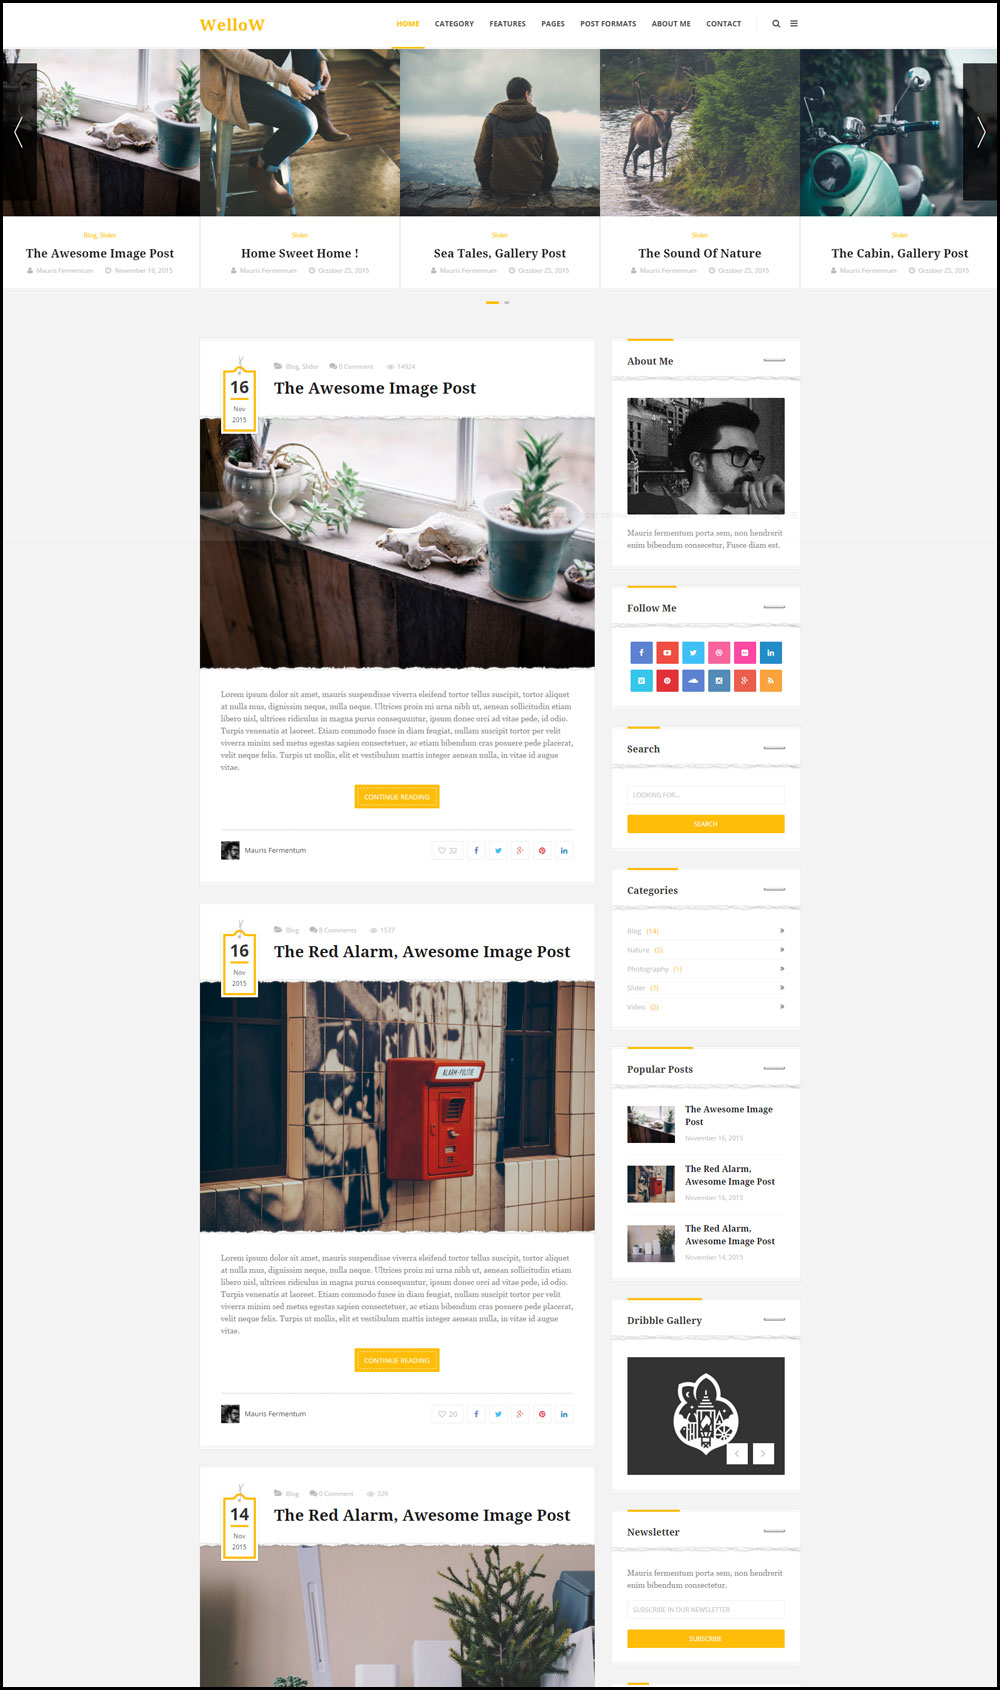 Wellow – Stylish WordPress Theme For Travel Bloggers